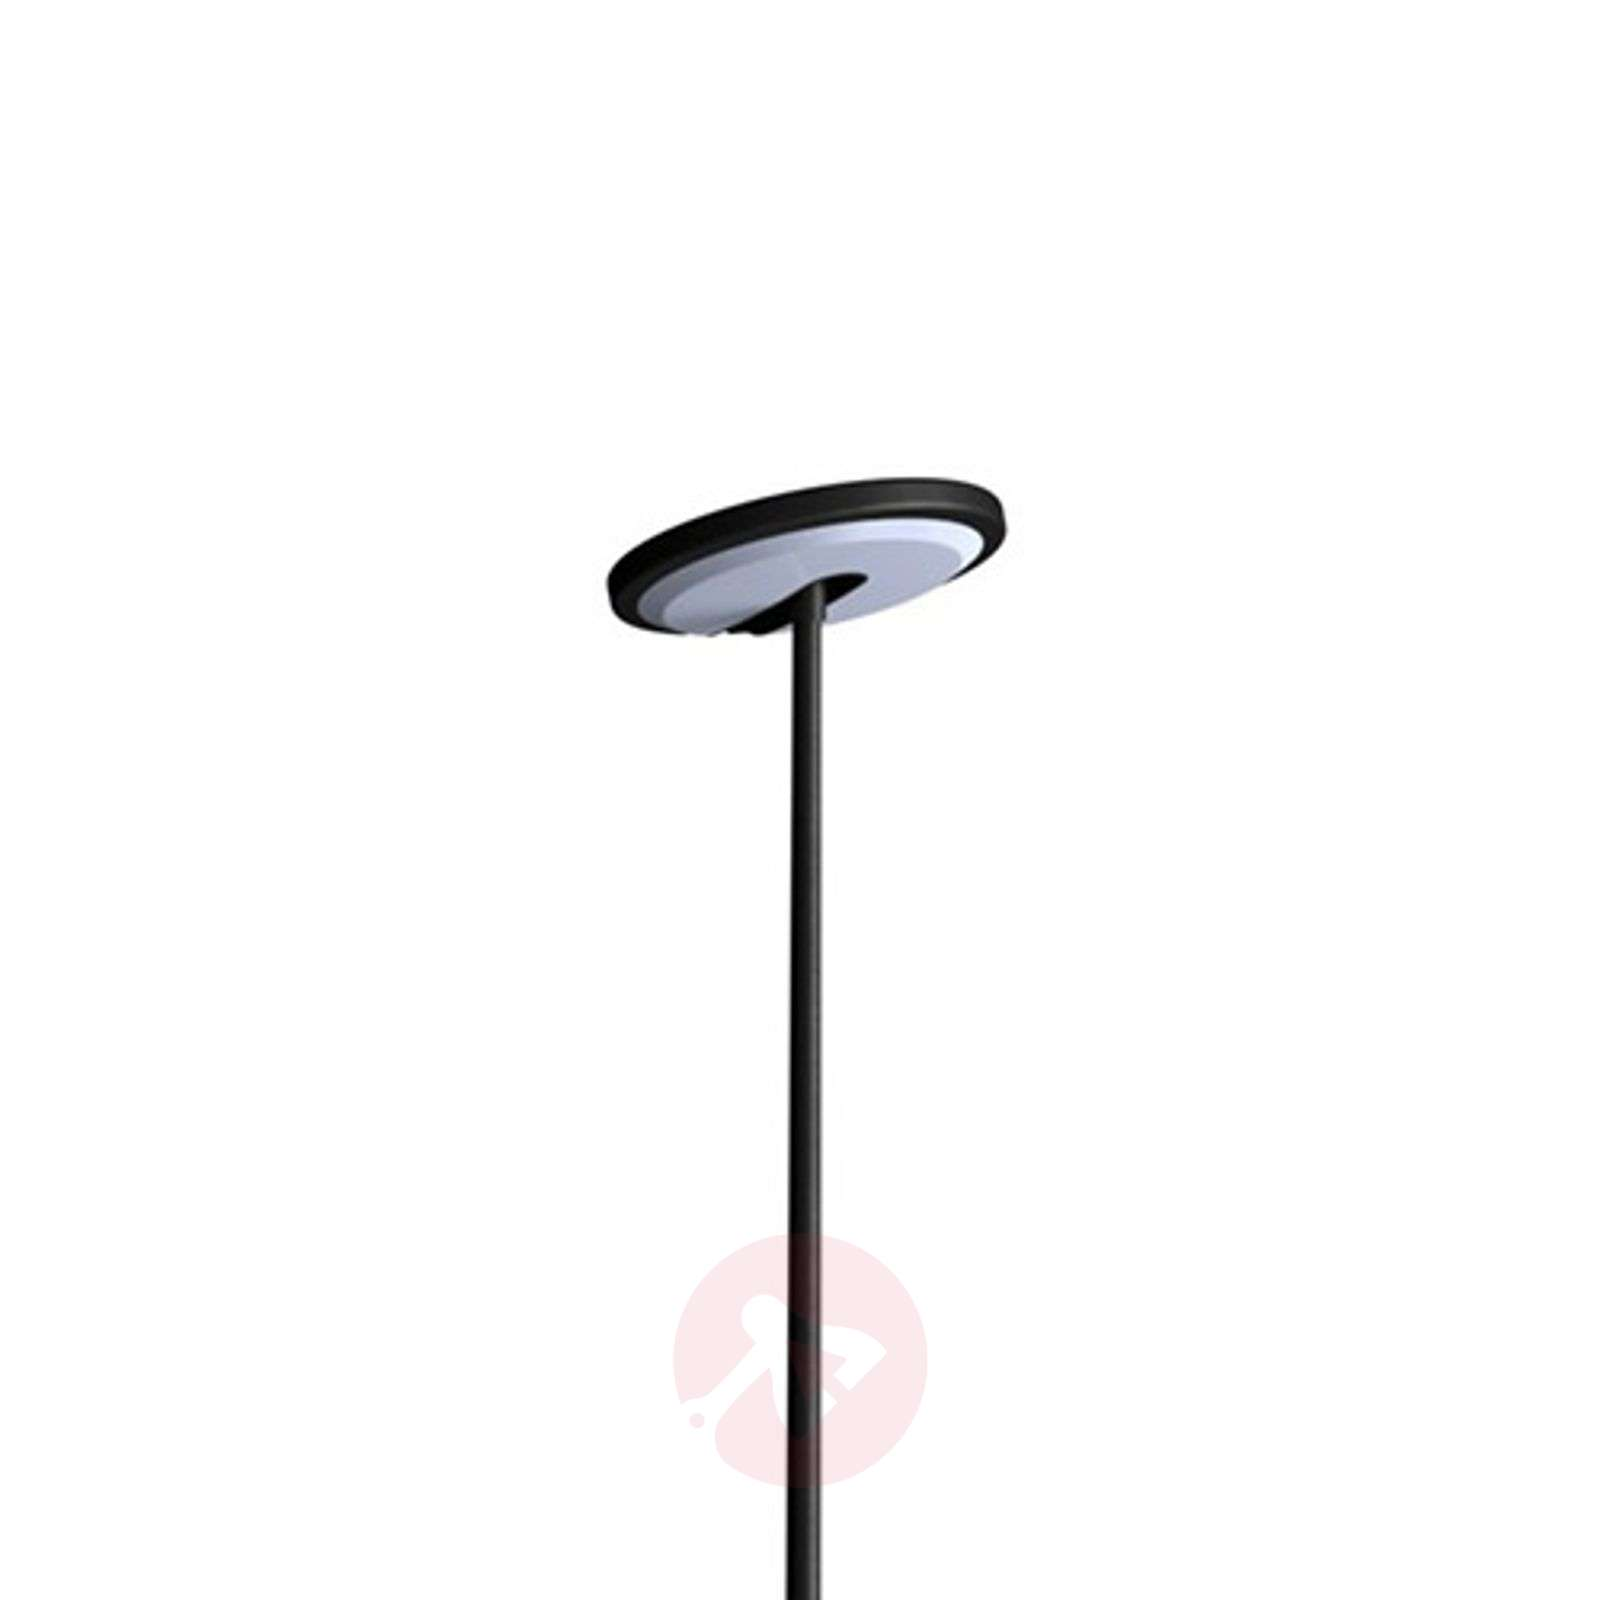 LED-lantaarnpaal Invisible IP65-6026508-02